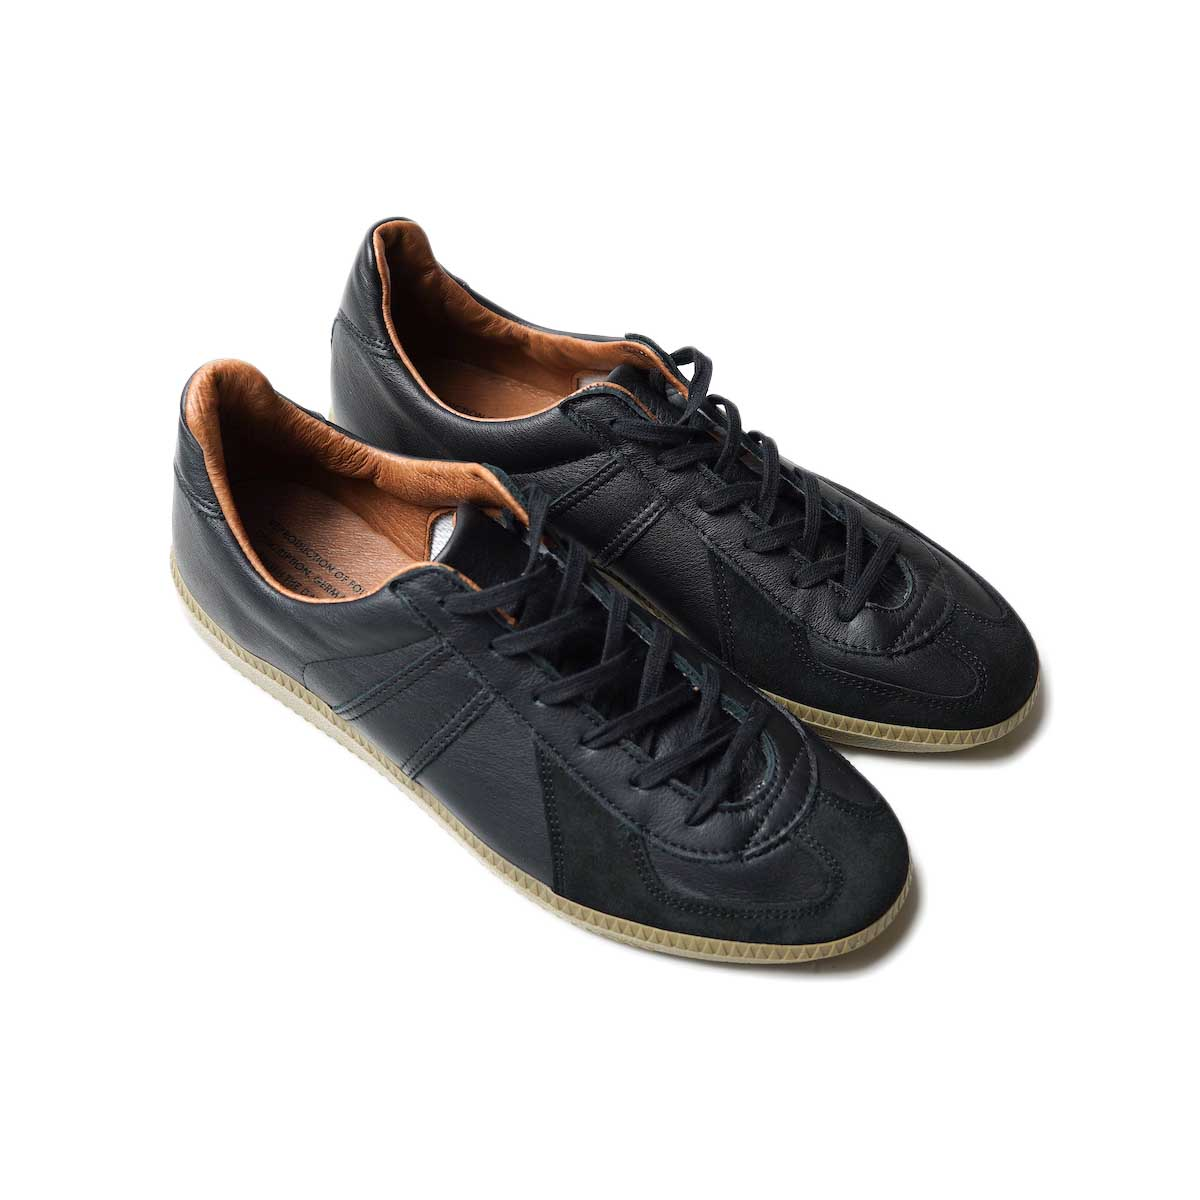 REPRODUCTION OF FOUND / GERMAN MILITARY TRAINER (Black)